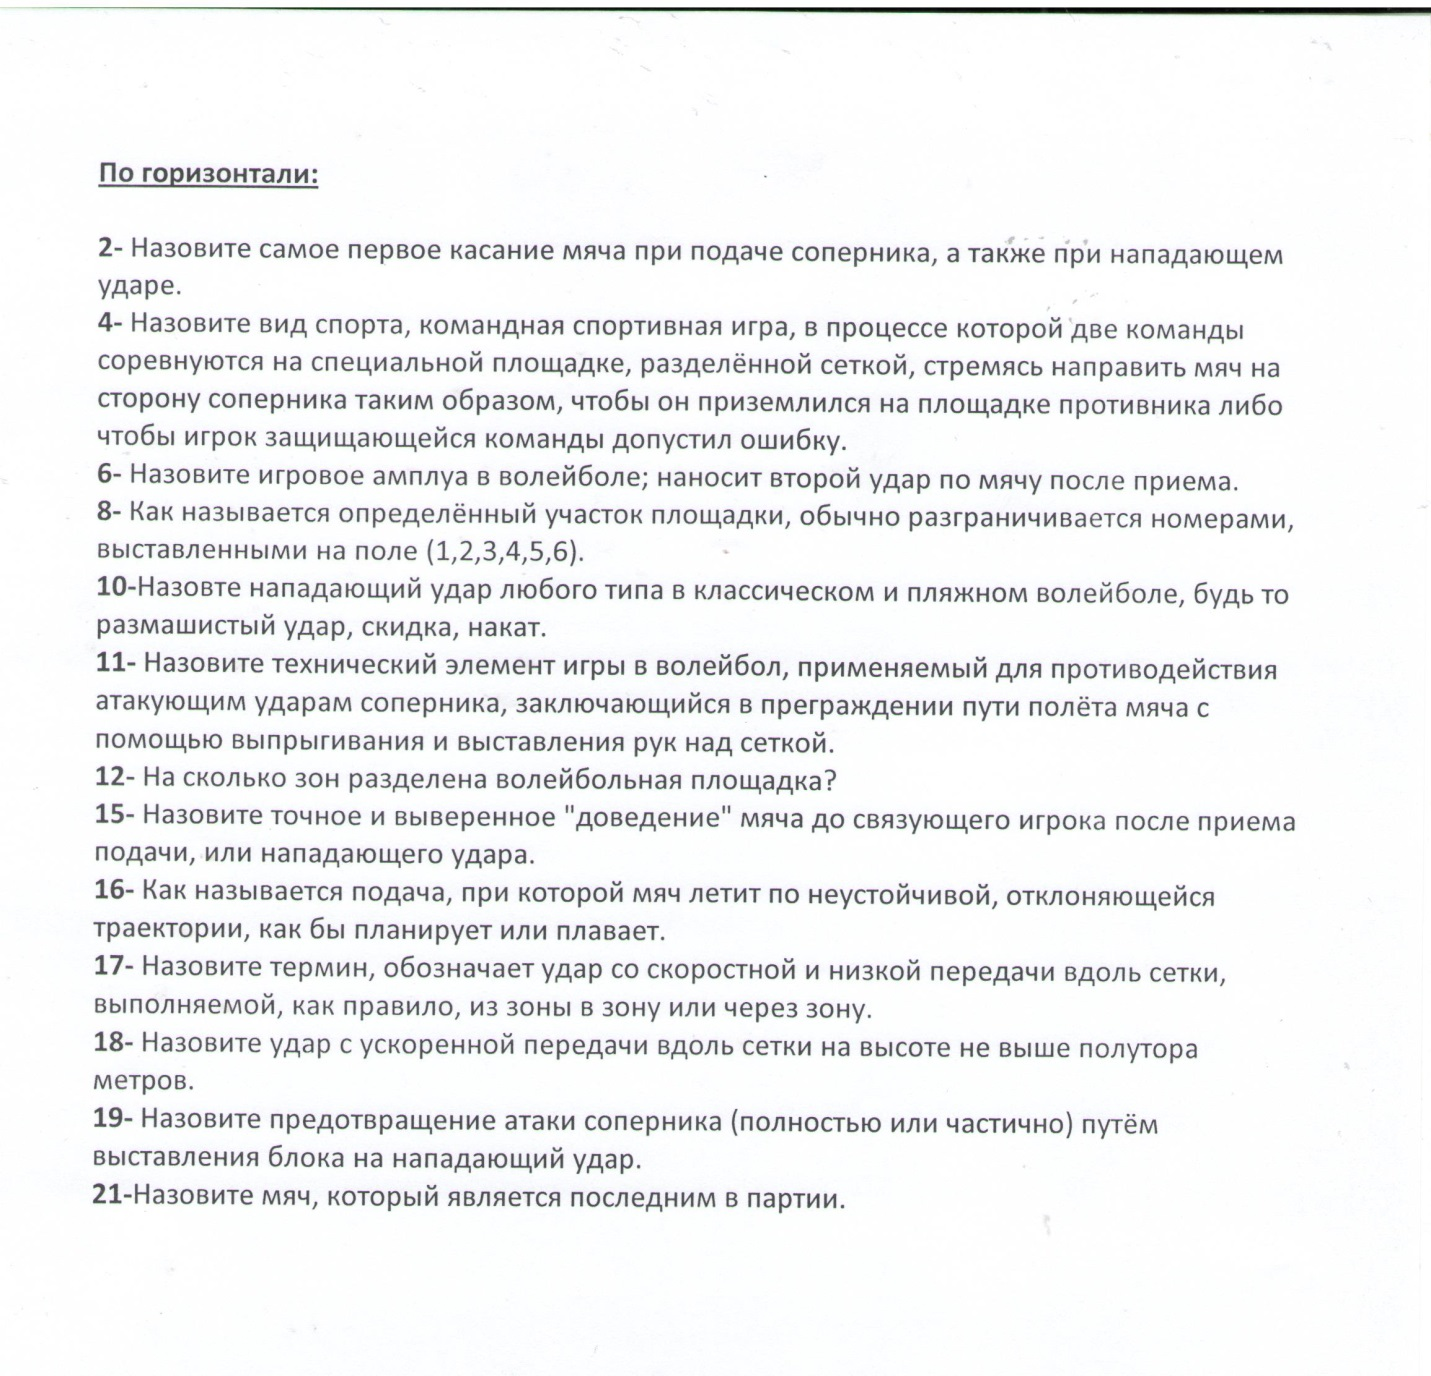 C:\Users\леночка\Documents\Scanned Documents\Кроссворд 2 стр..jpg